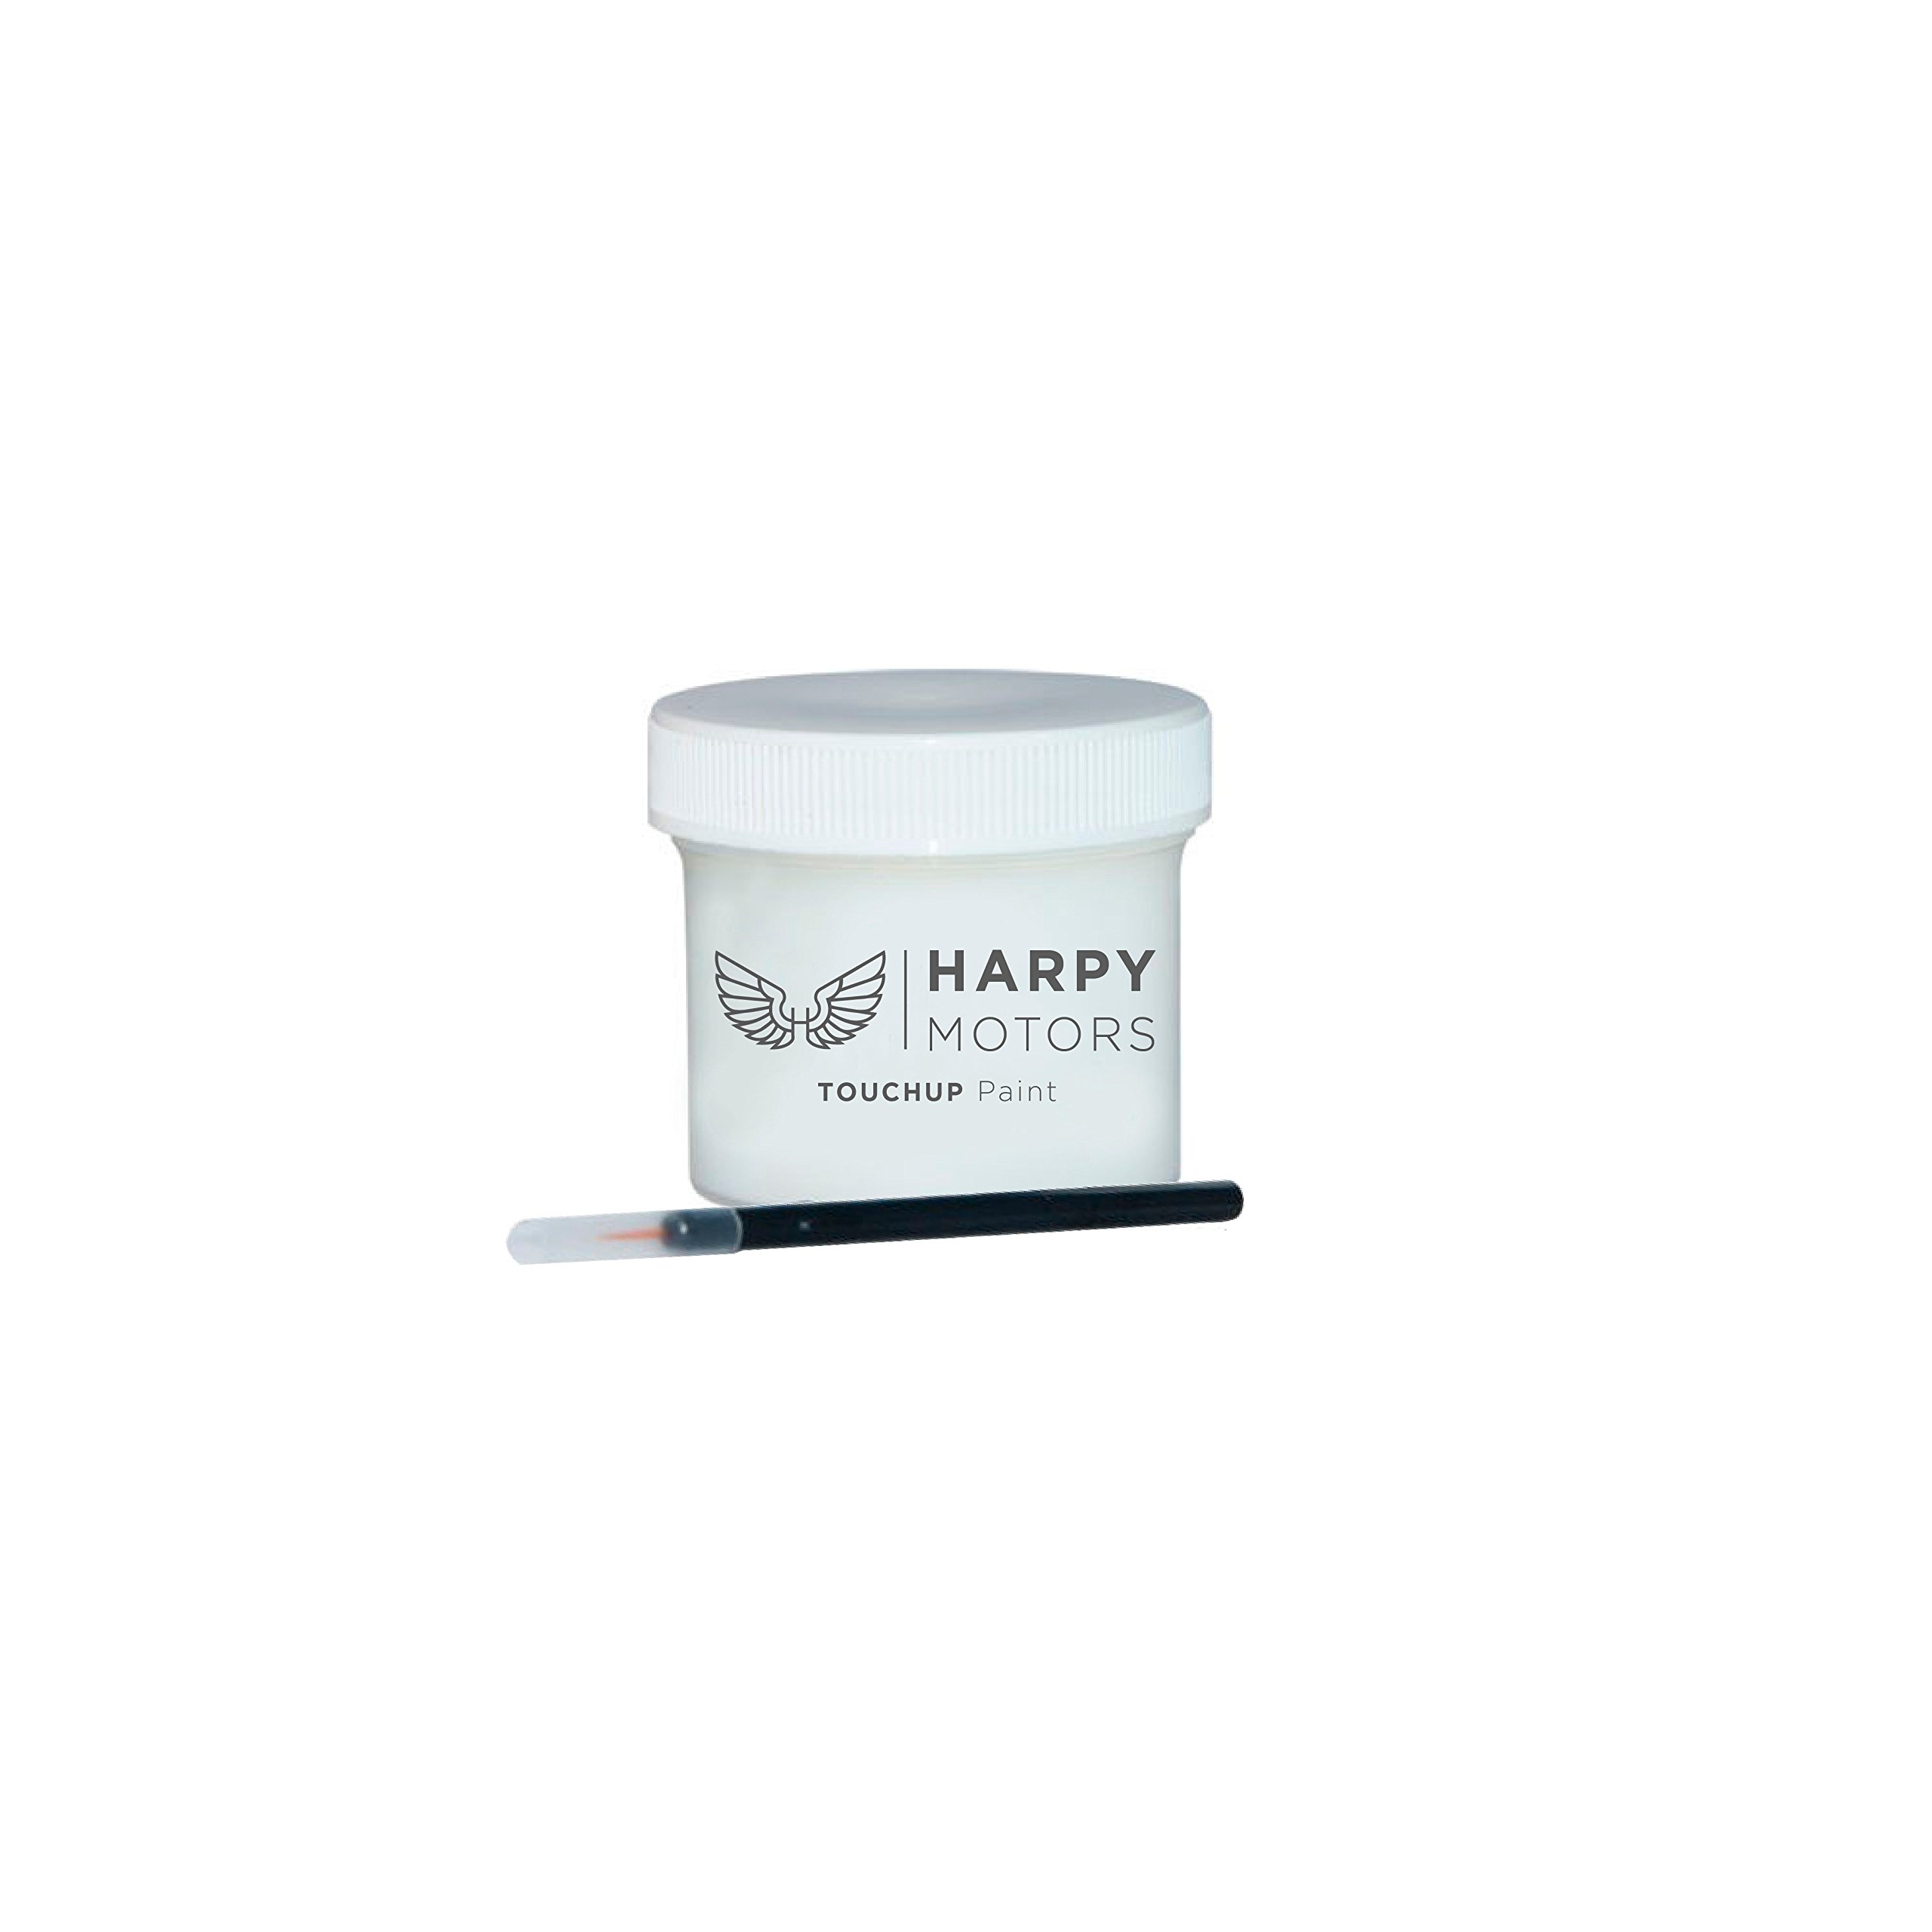 Harpy Motors 2017-2018 Chrysler Pacifica PRV Velvet Red Pearl 2oz Automotive Touch up Paint with Brush -Color Match Guaranteed by Harpy Motors